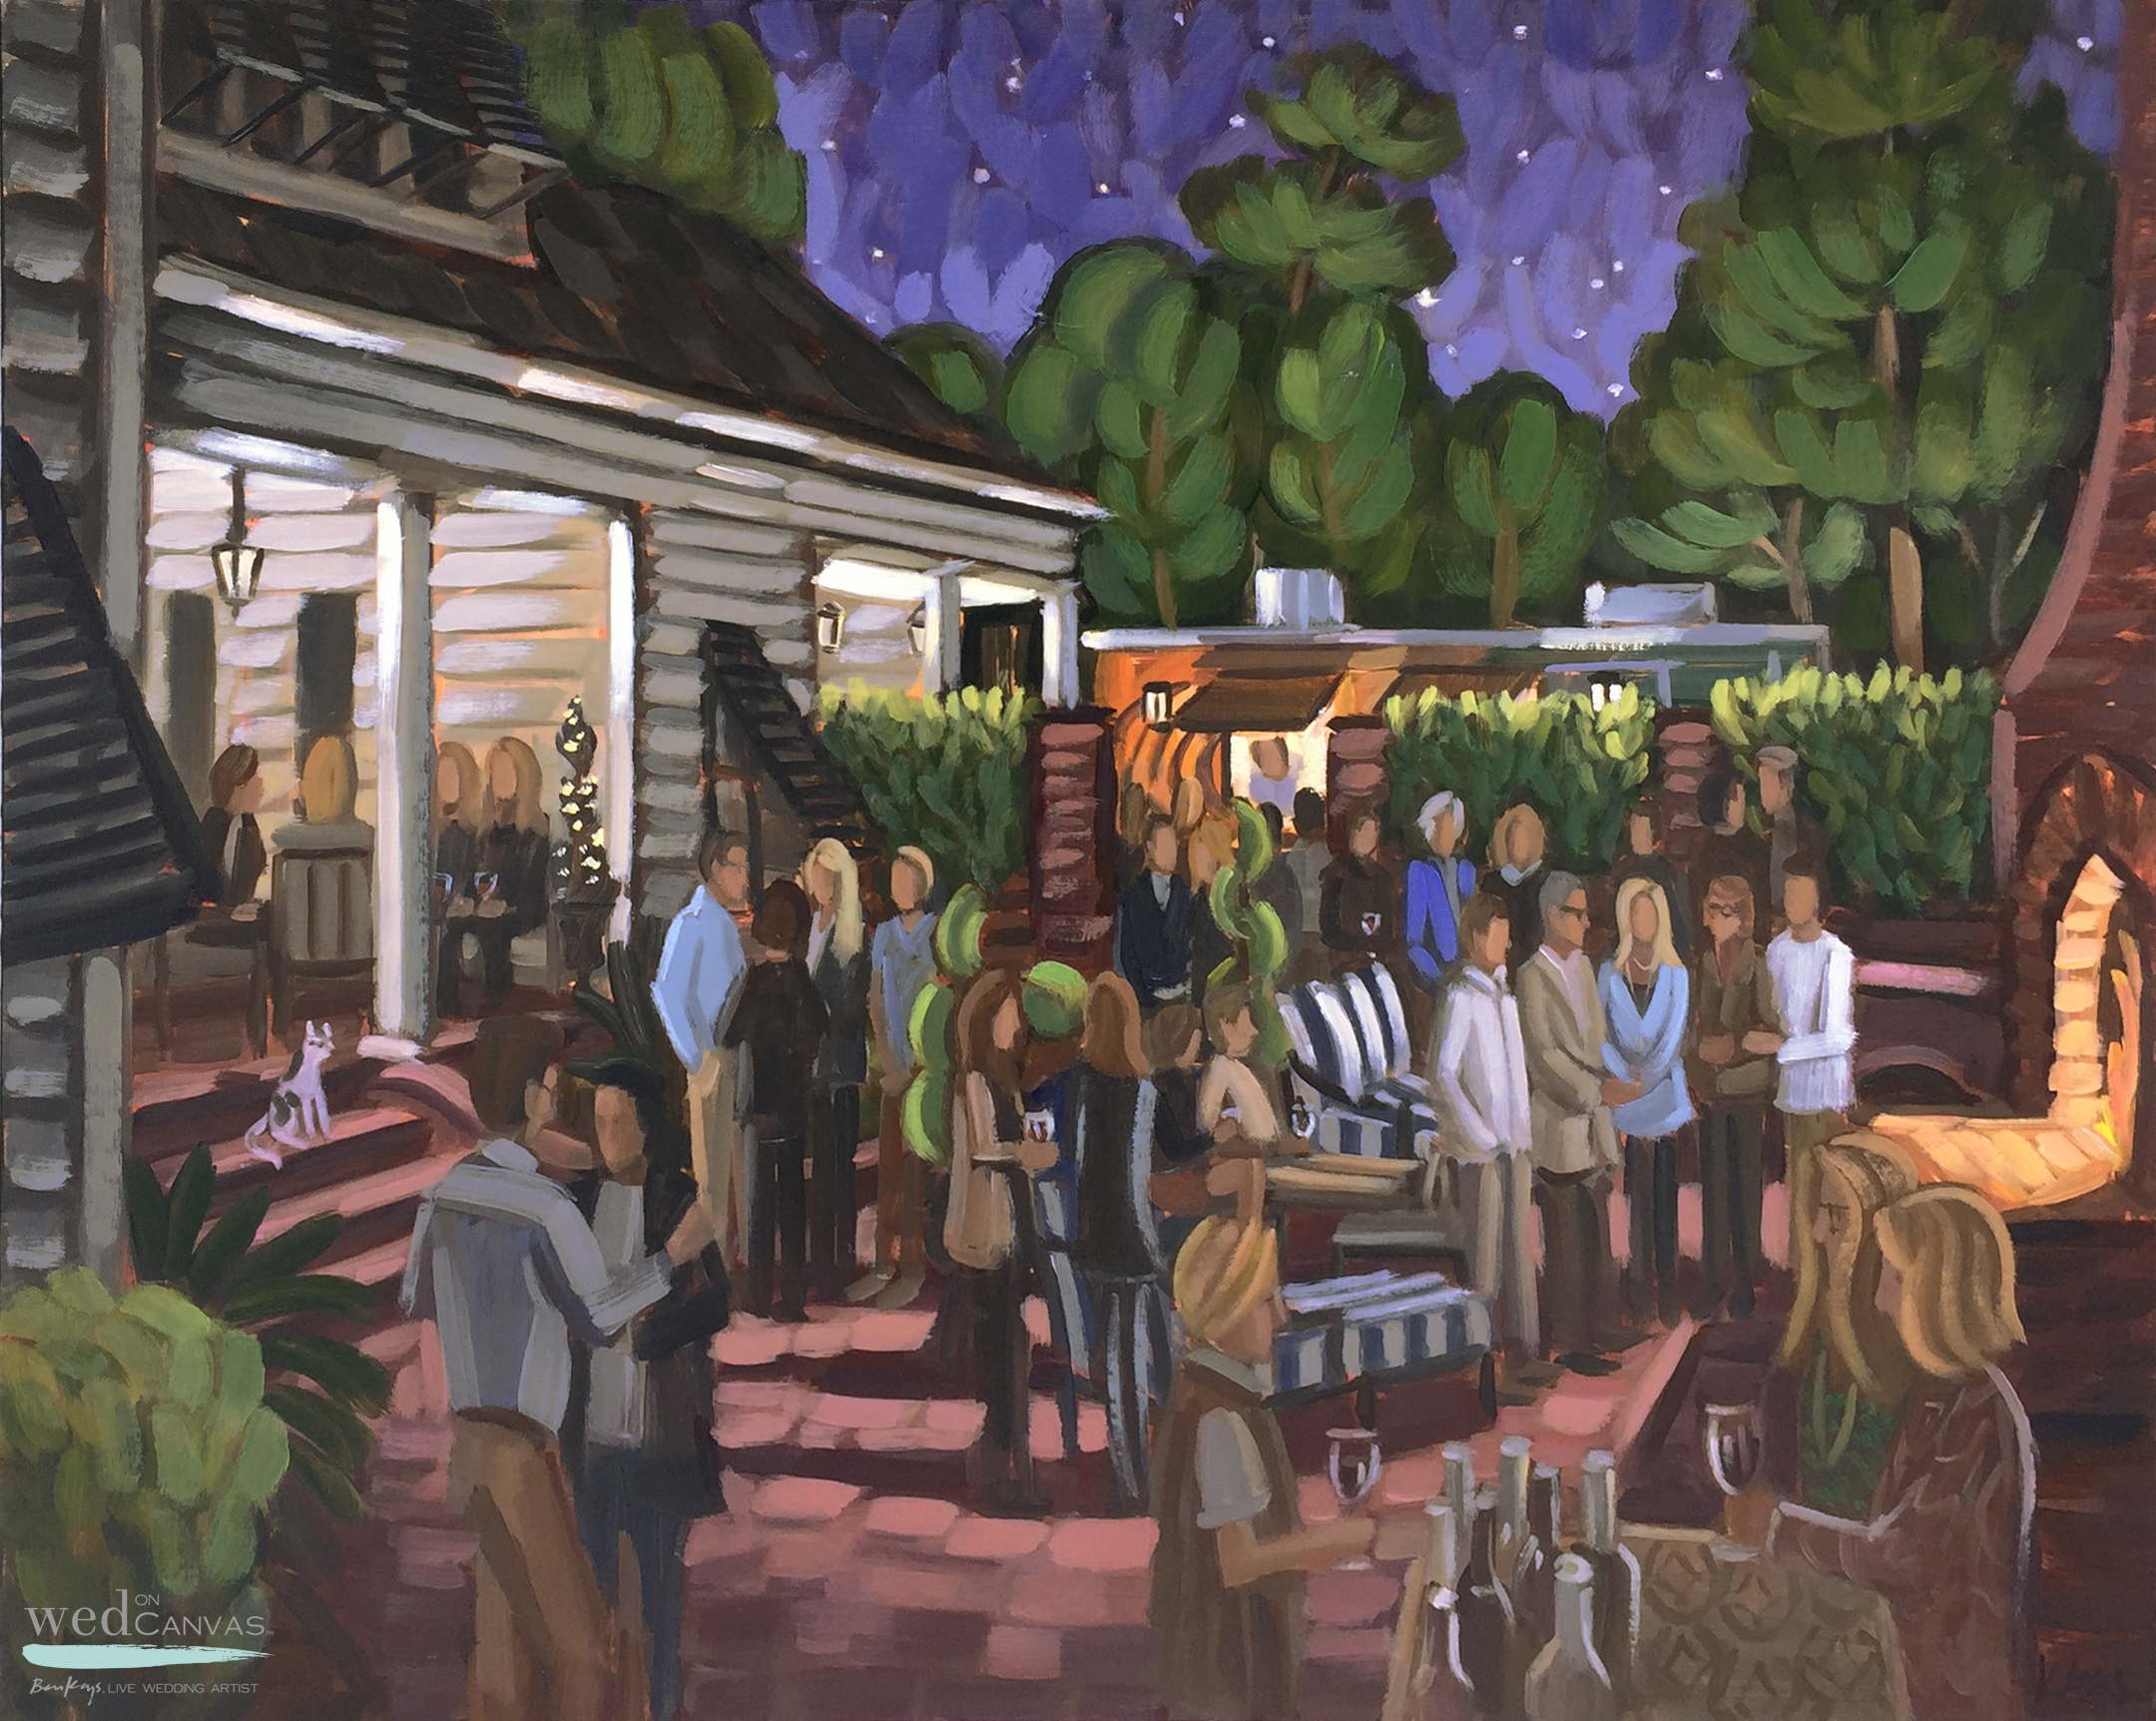 Live event artist, Ben Keys, captures Paula's 50th Birthday party in Wrightsville Beach, NC